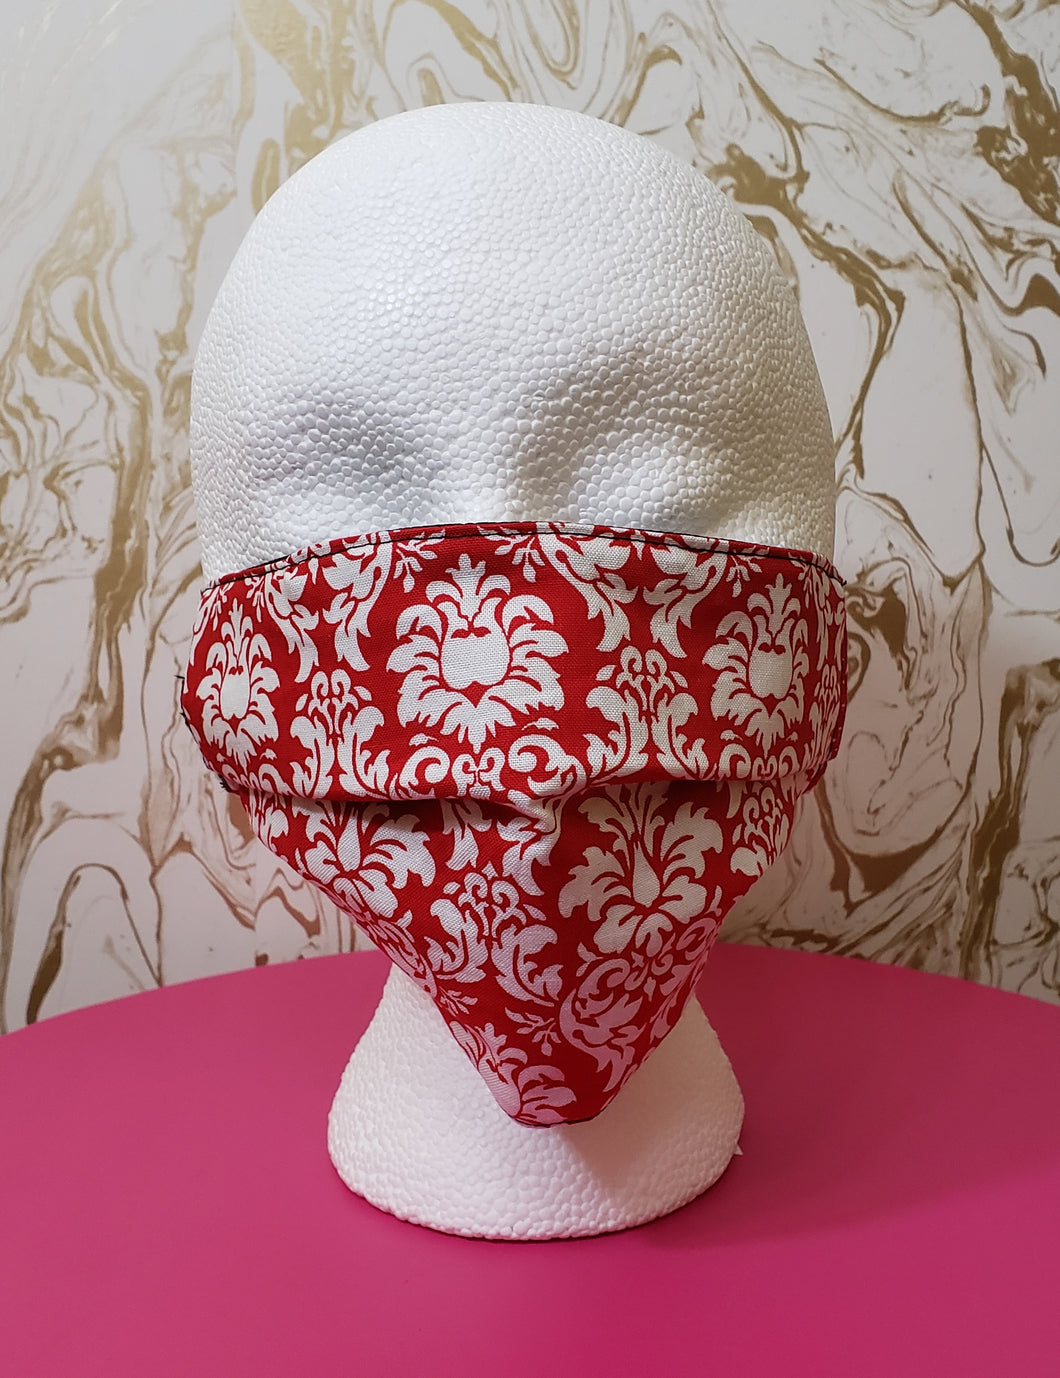 Red & White Damask Filtered Face Mask - 3 Layers with Built in Filter - Kids